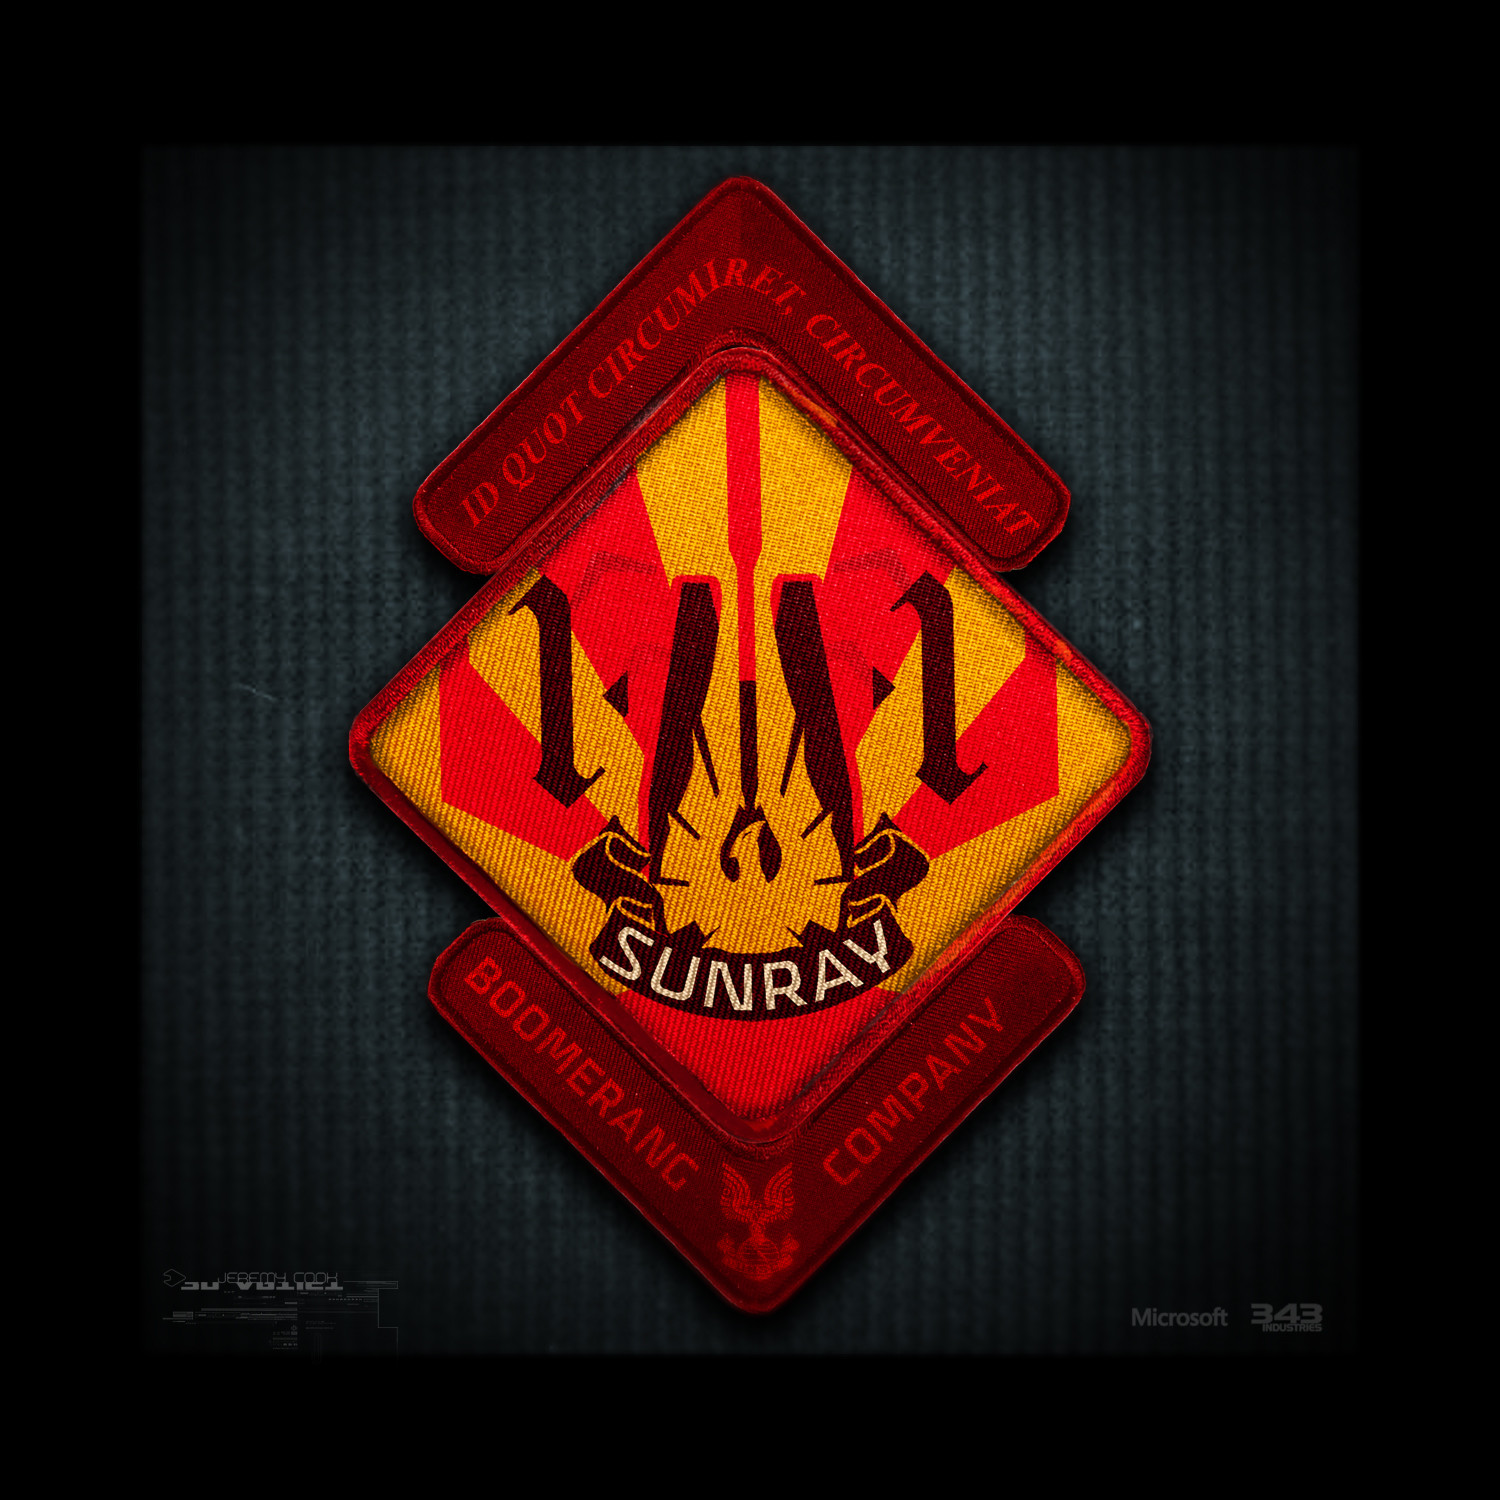 Team Sunray squadron Patch concept